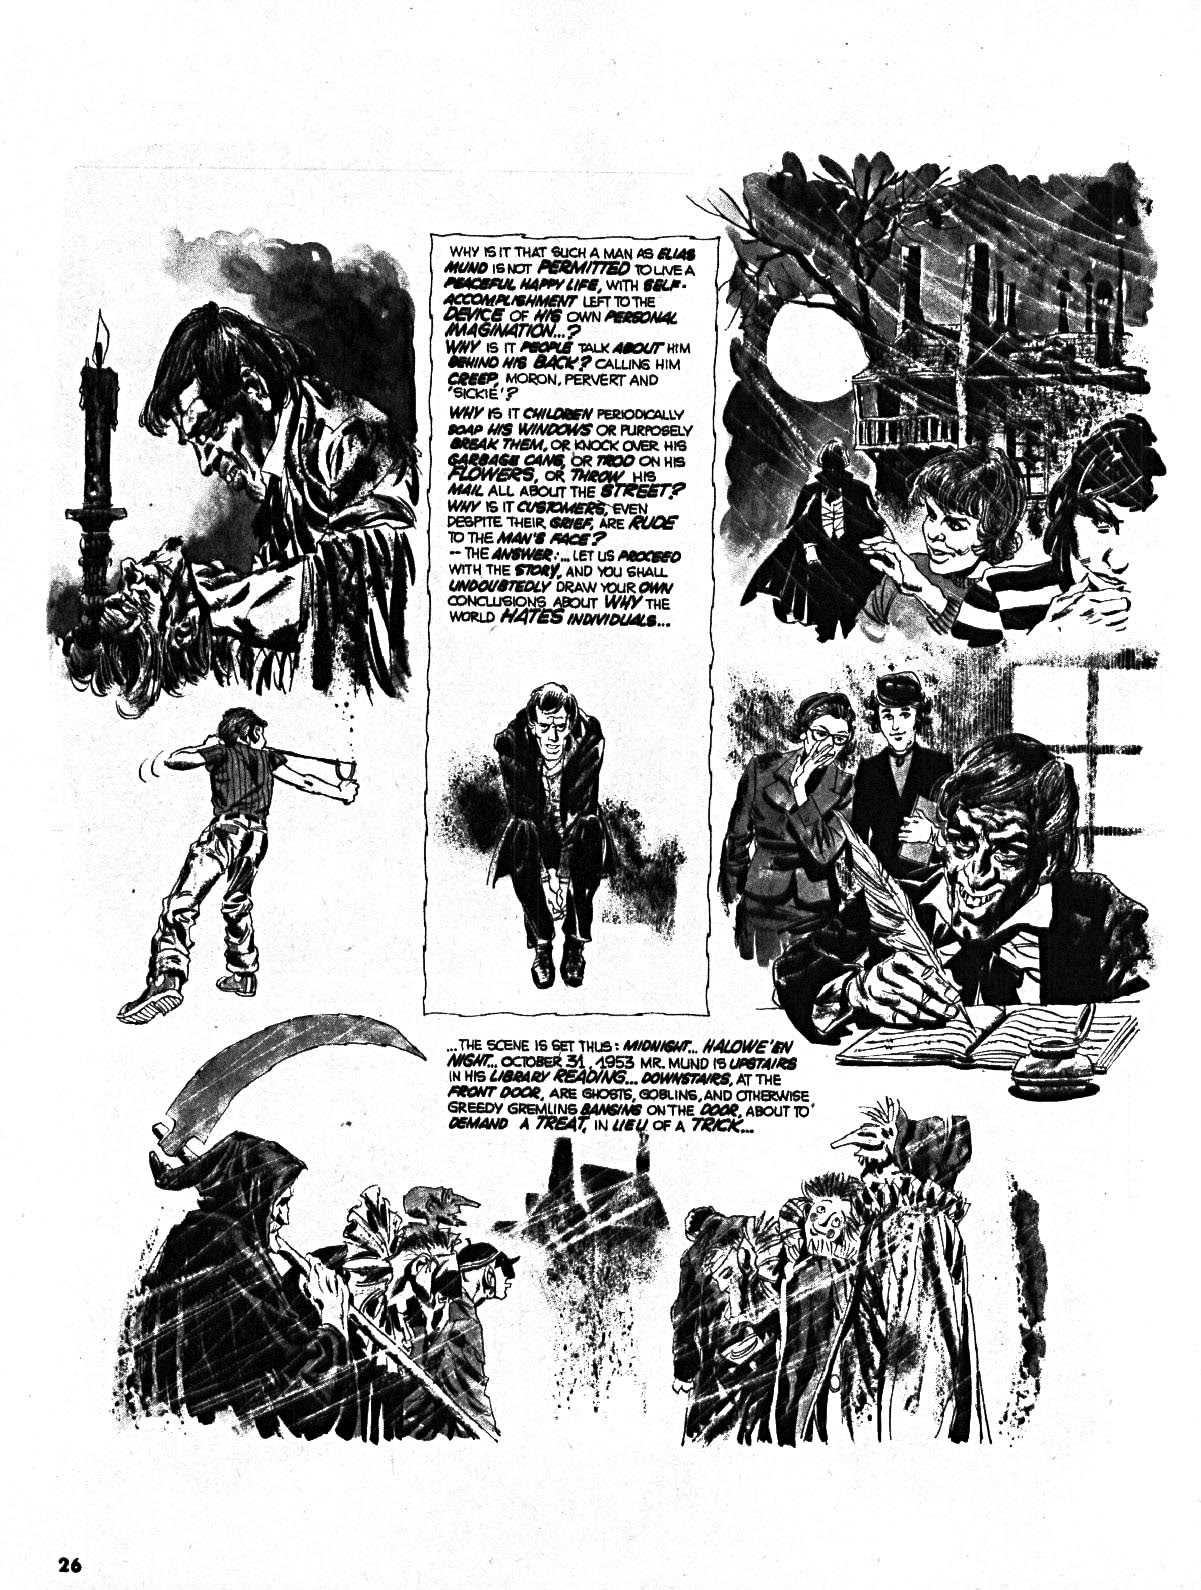 Scream (1973) issue 8 - Page 25